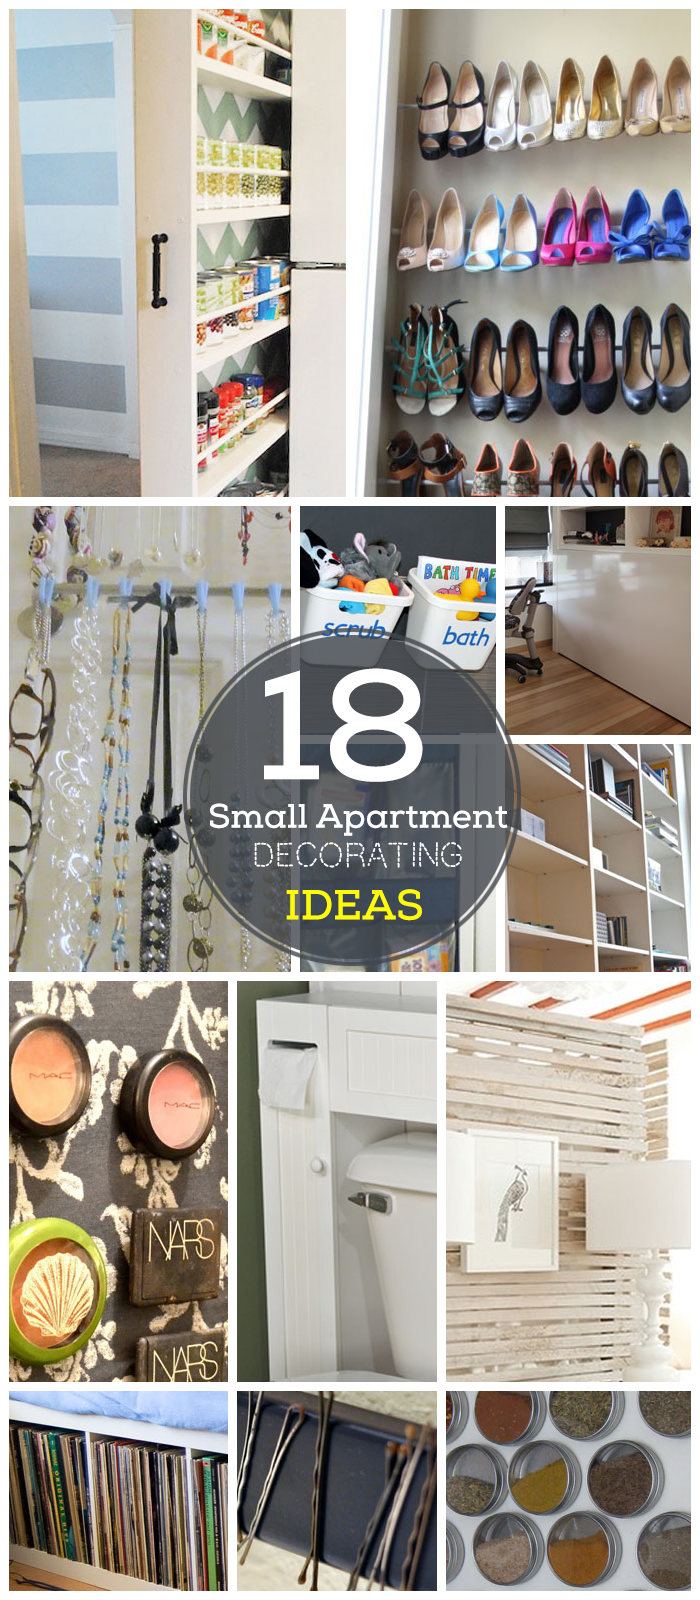 25 Small Apartment Decorating Ideas on a Budget | Apartments ...